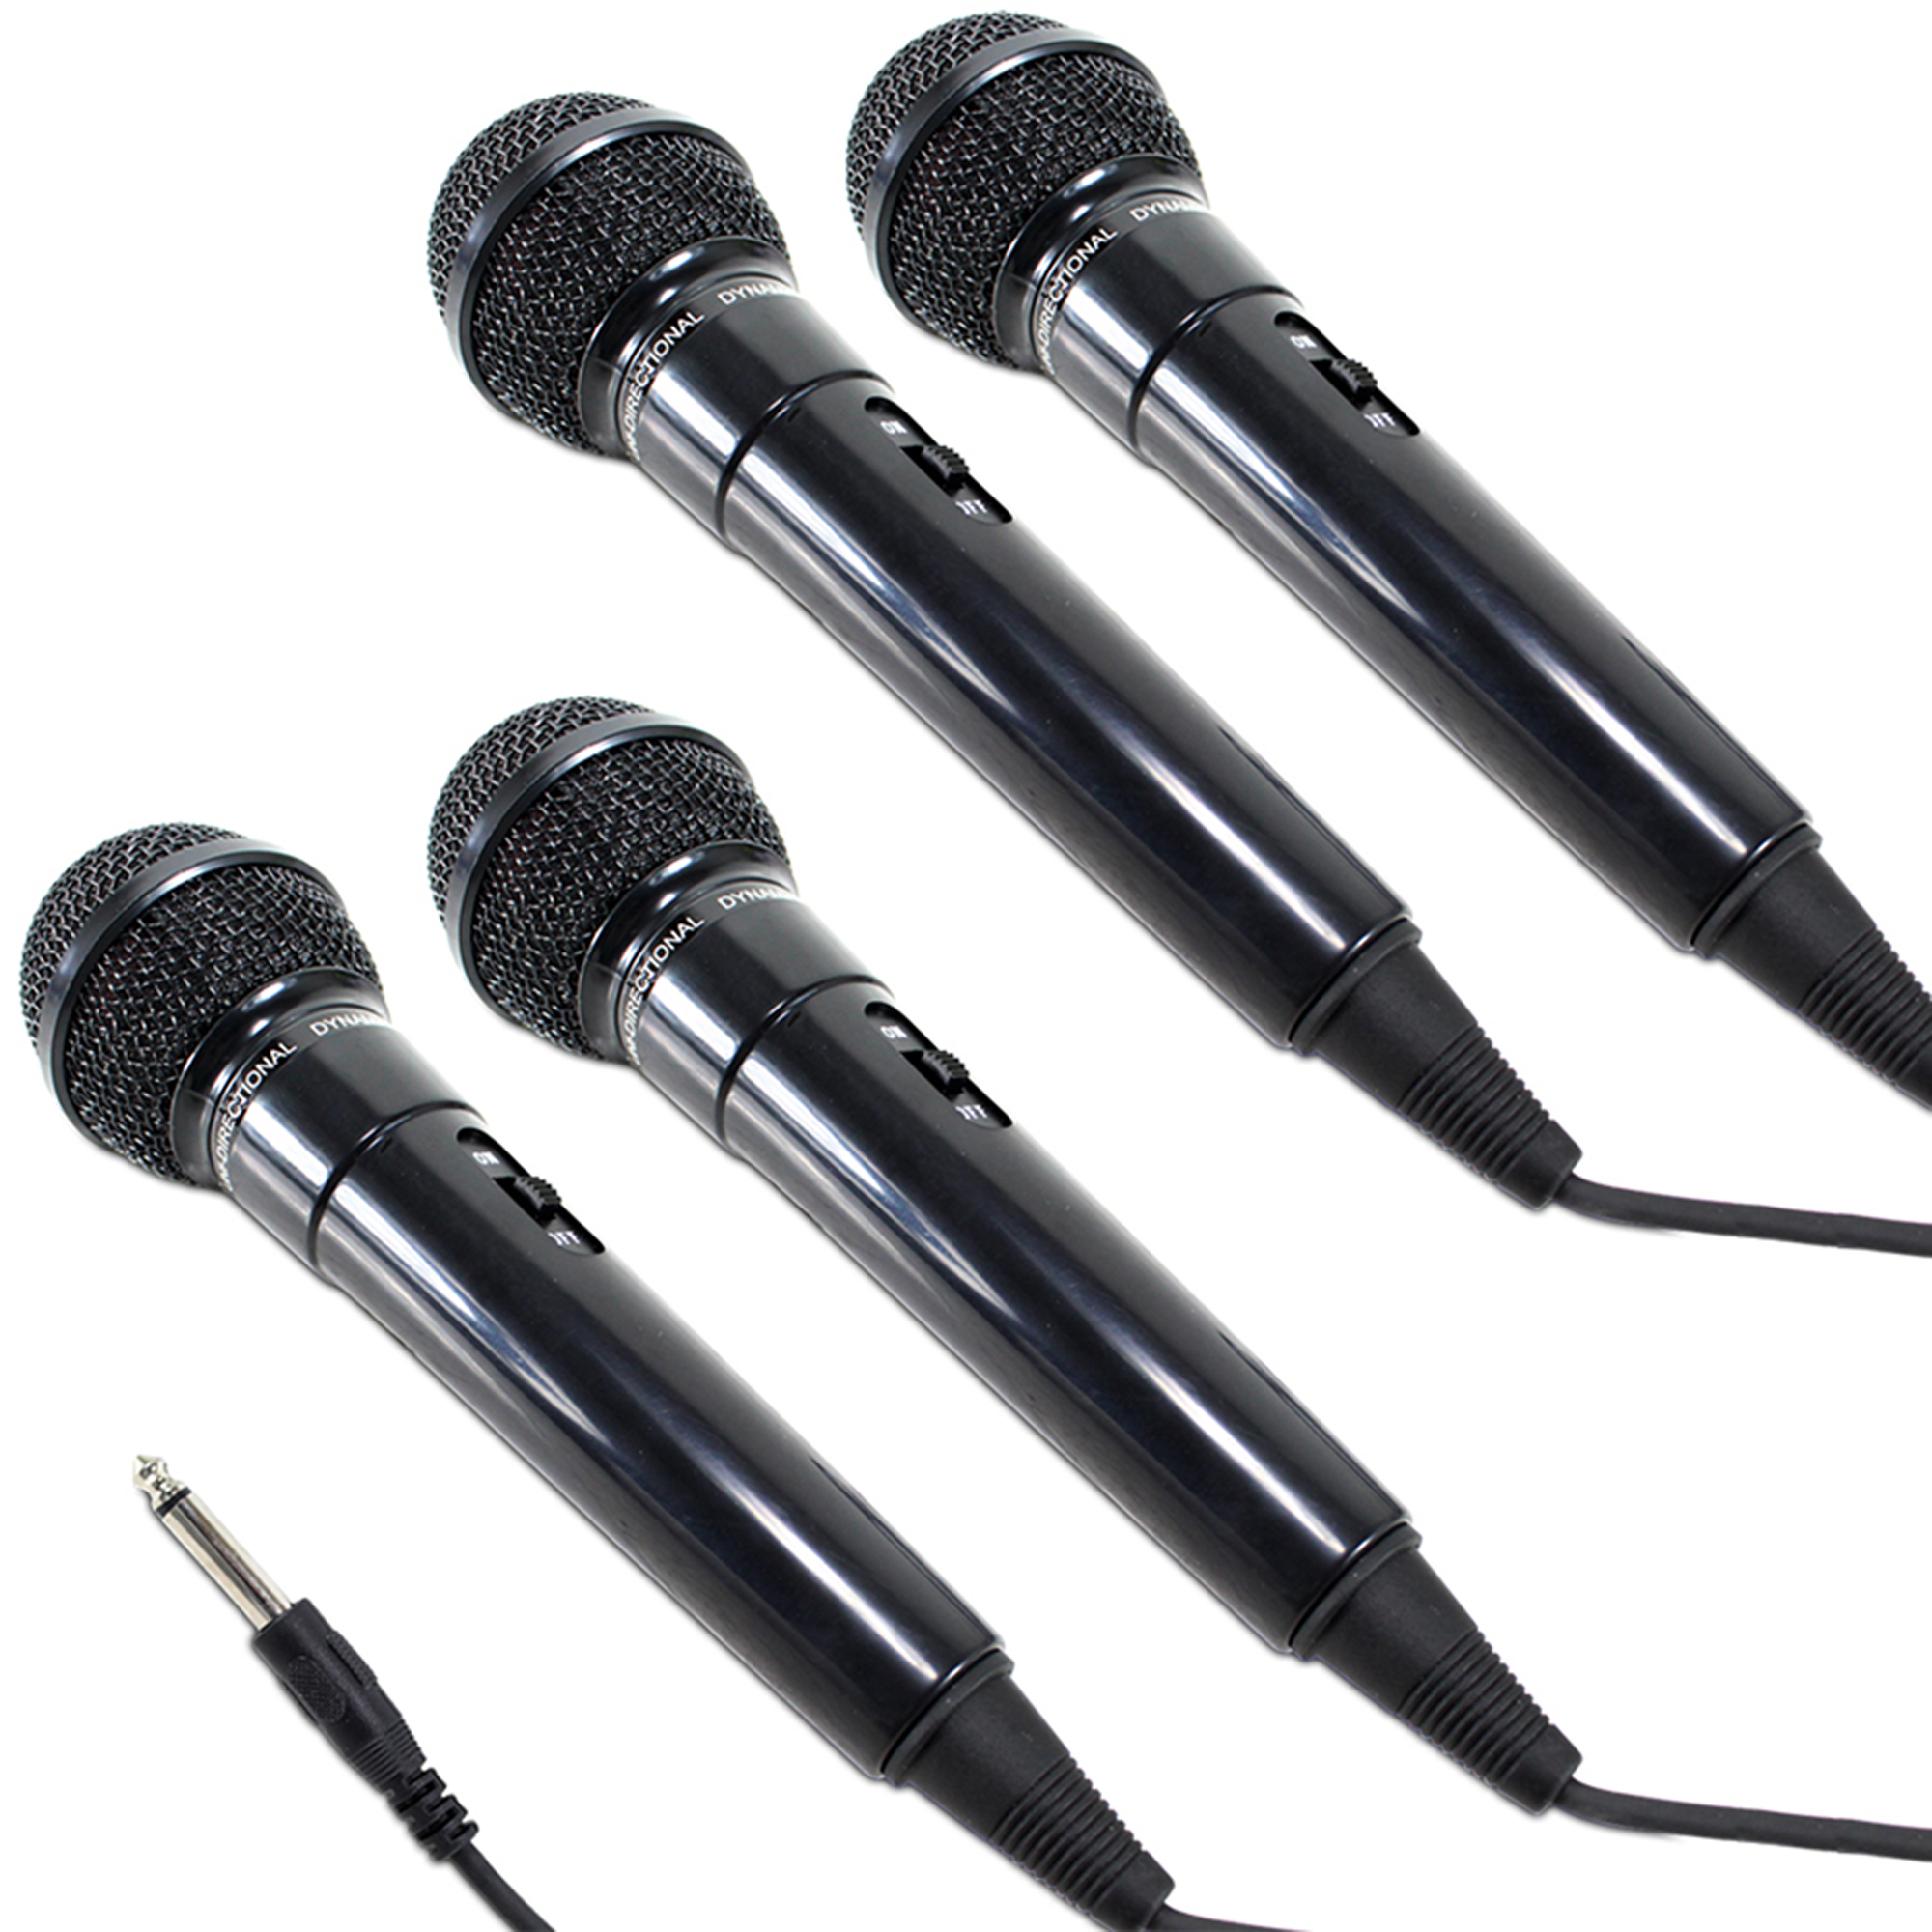 Pulse Dynamic Wired Handheld Microphones, Set of 4